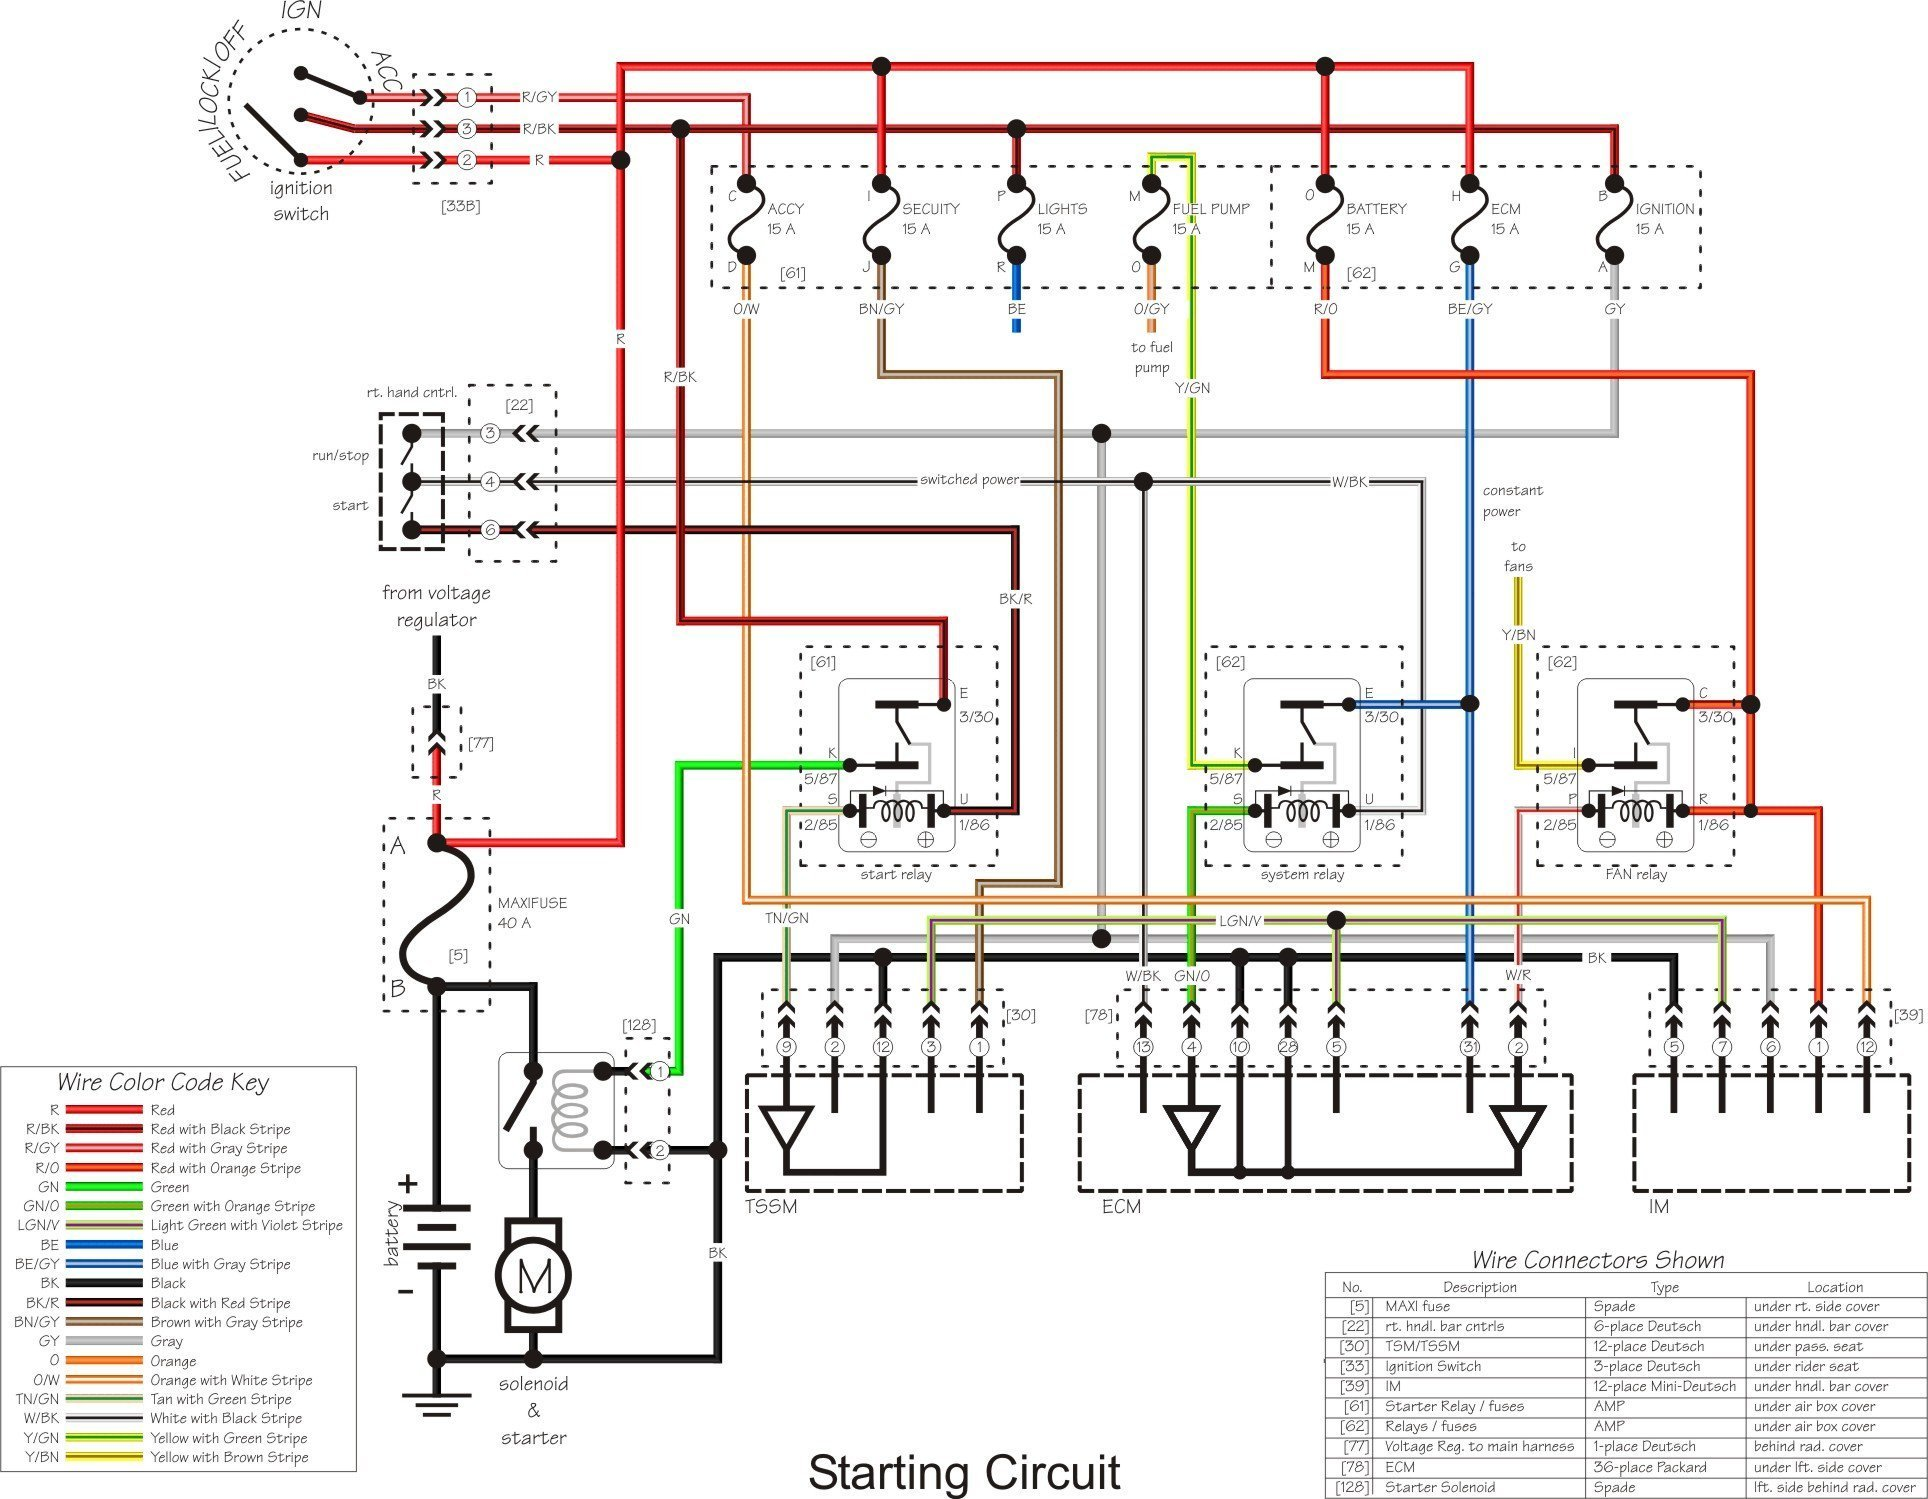 Attachment on Harley Davidson Wiring Diagram Manual